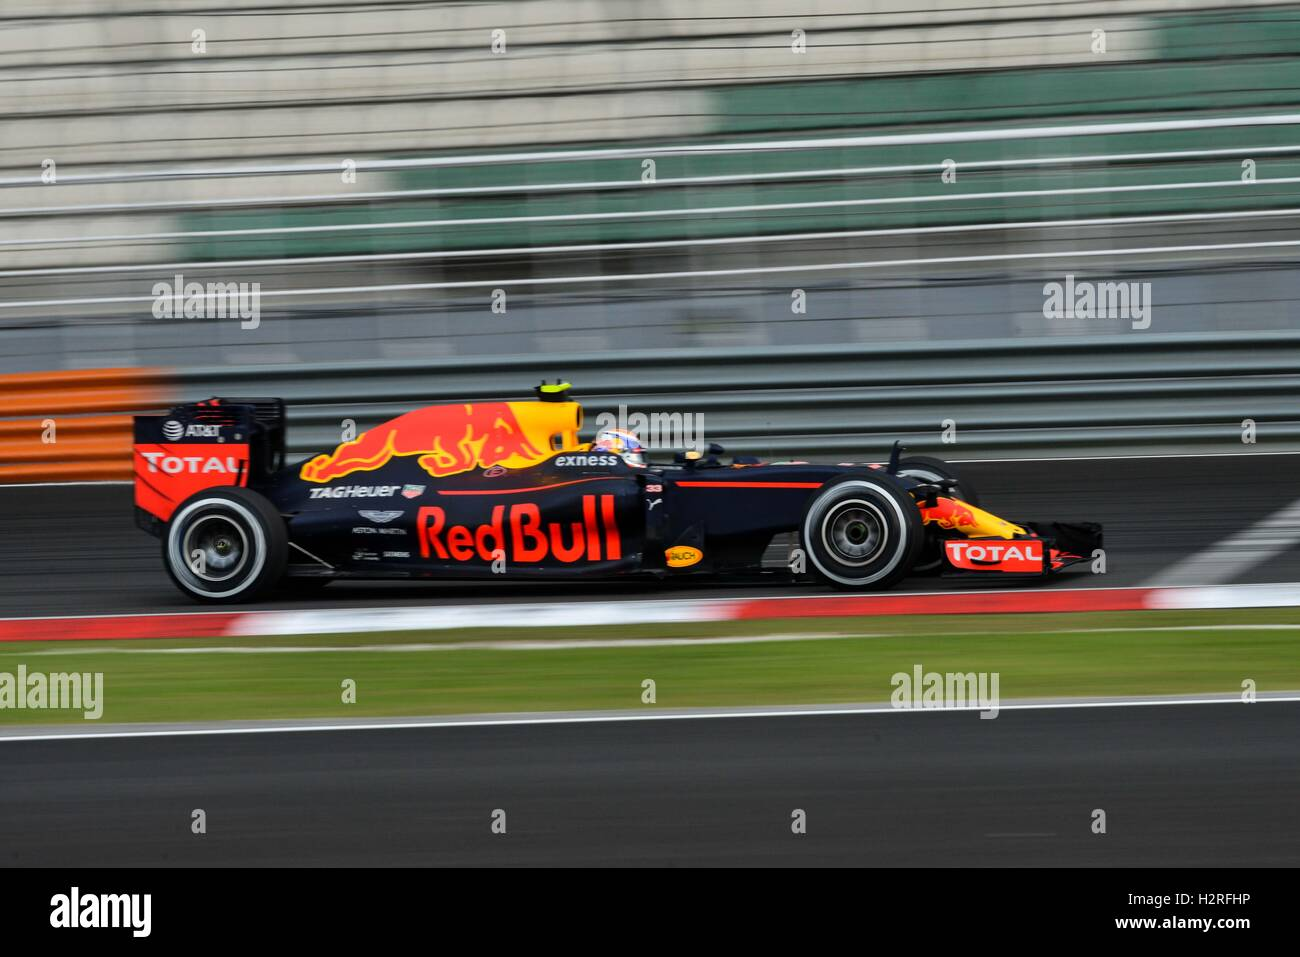 Sepang, Malaysia. 1st Oct, 2016. Red Bull Racing's driver Max Verstappen drives during the qualifying session of Stock Foto